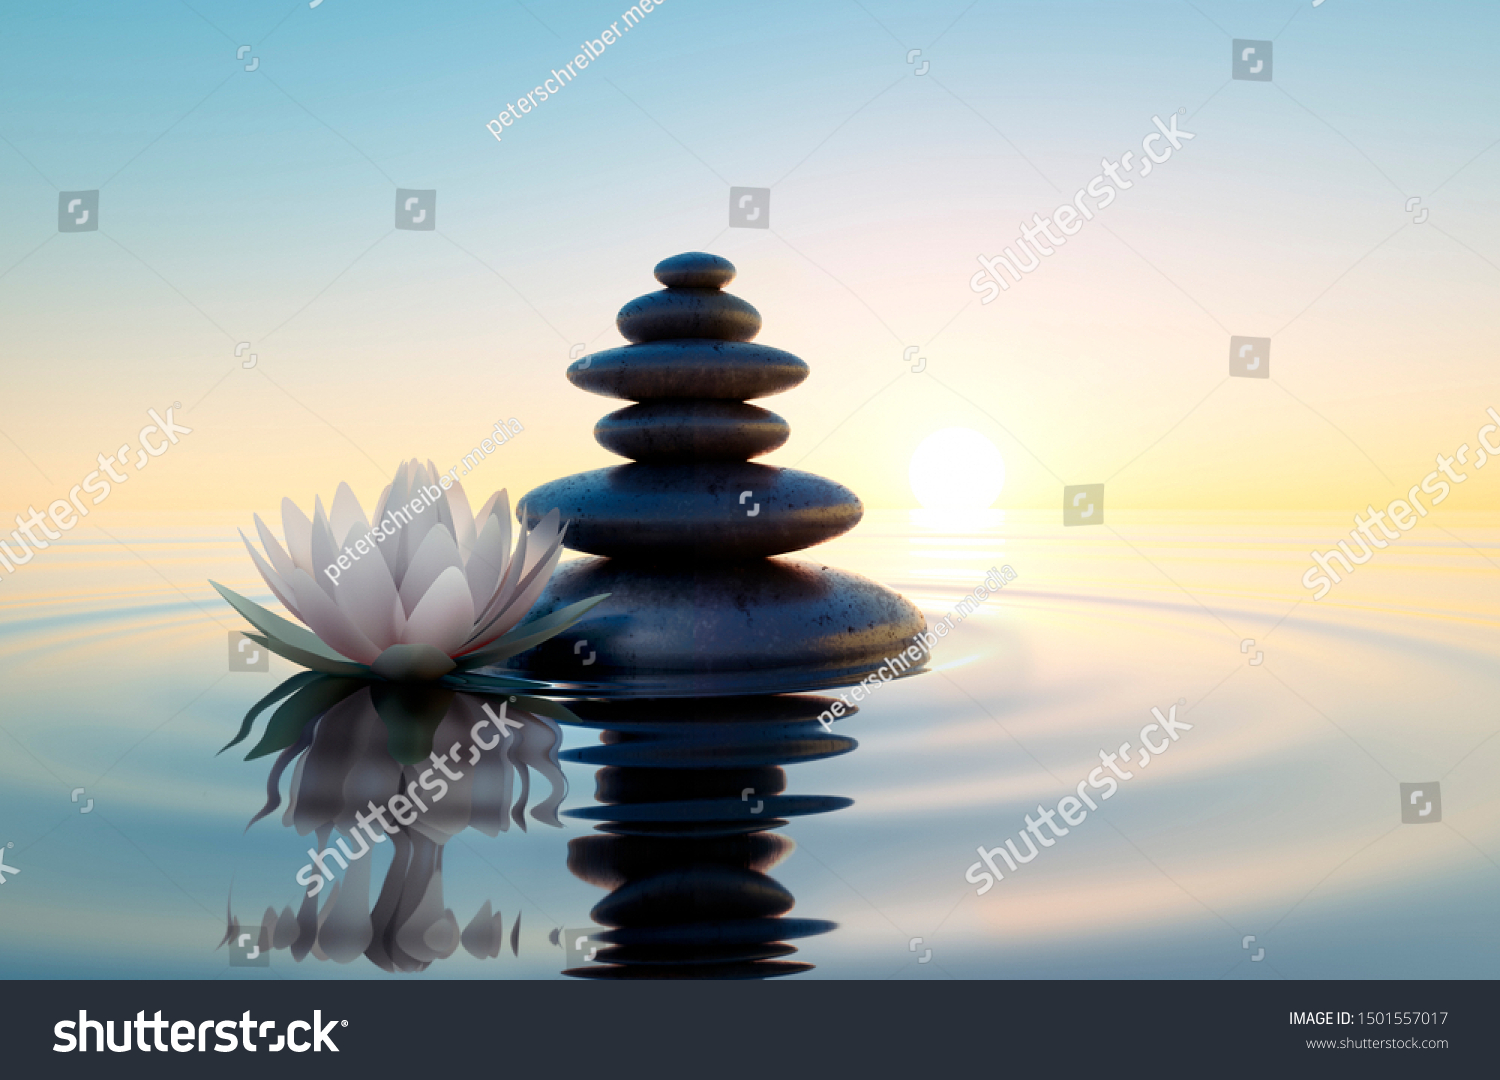 Stack of stones in calm water with lotus flower - concept of meditation - 3D illustration #1501557017